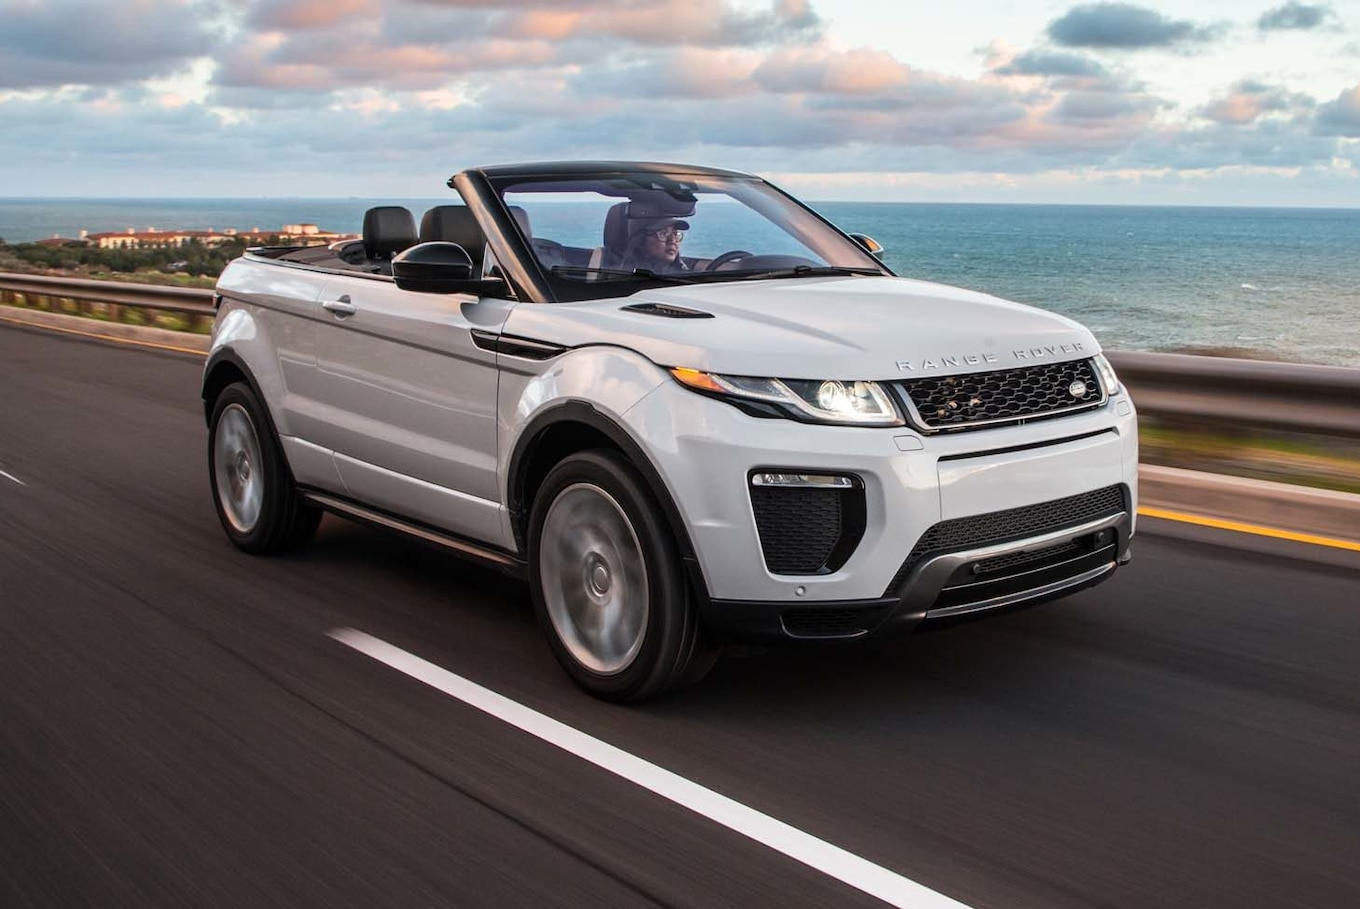 But Convertible 2017 Range Rover Evoque Convertible First Test It S Cool But